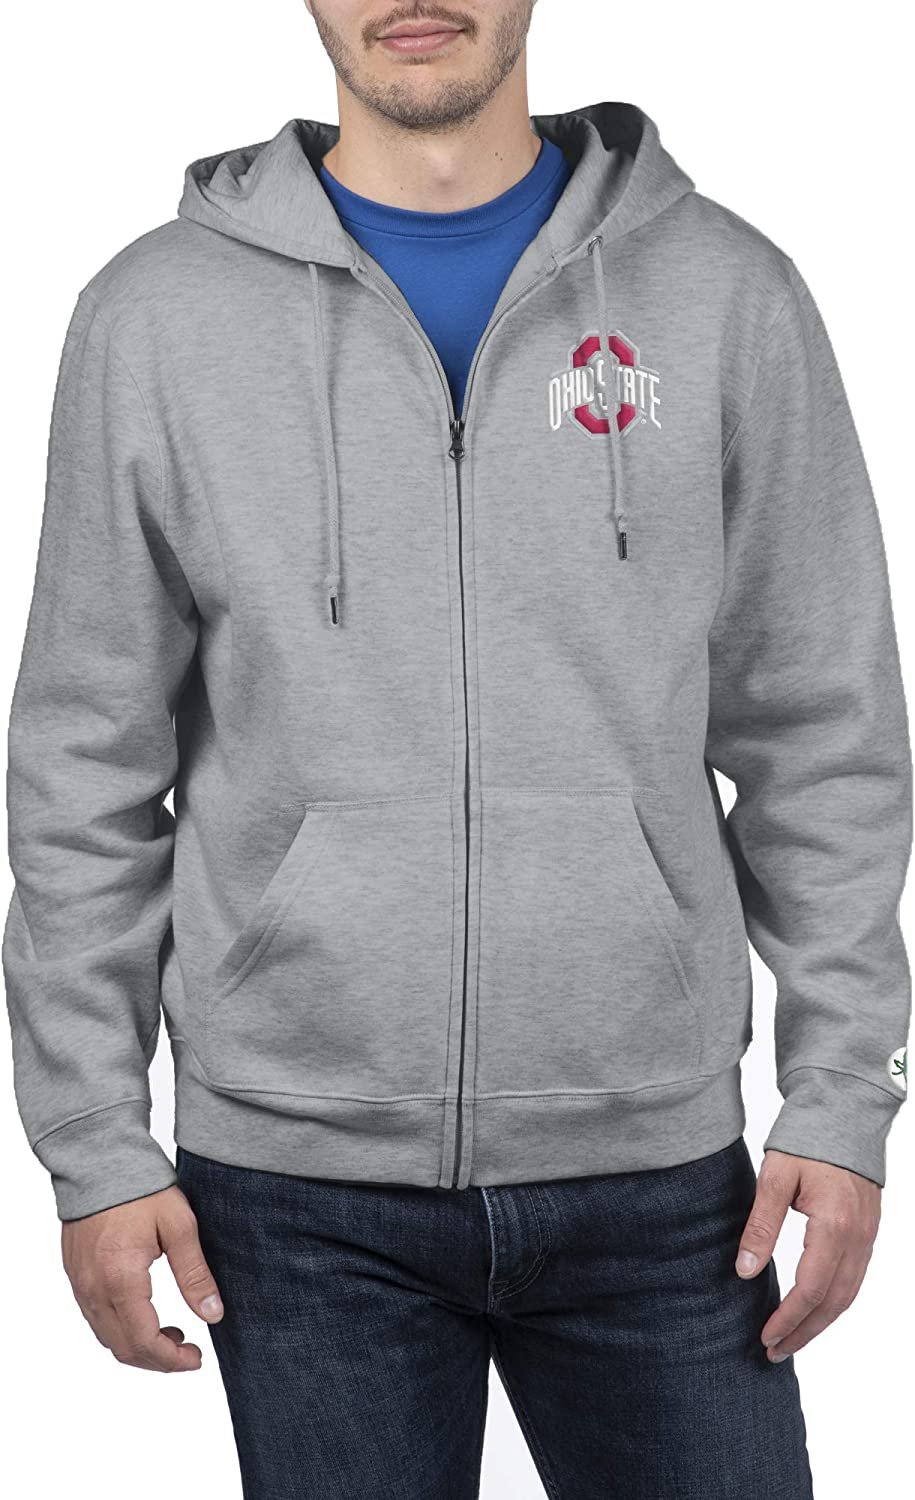 Top of the World Ohio State Buckeyes Mens Full Zip Hoodie Applique Icon Gray Heather X Large